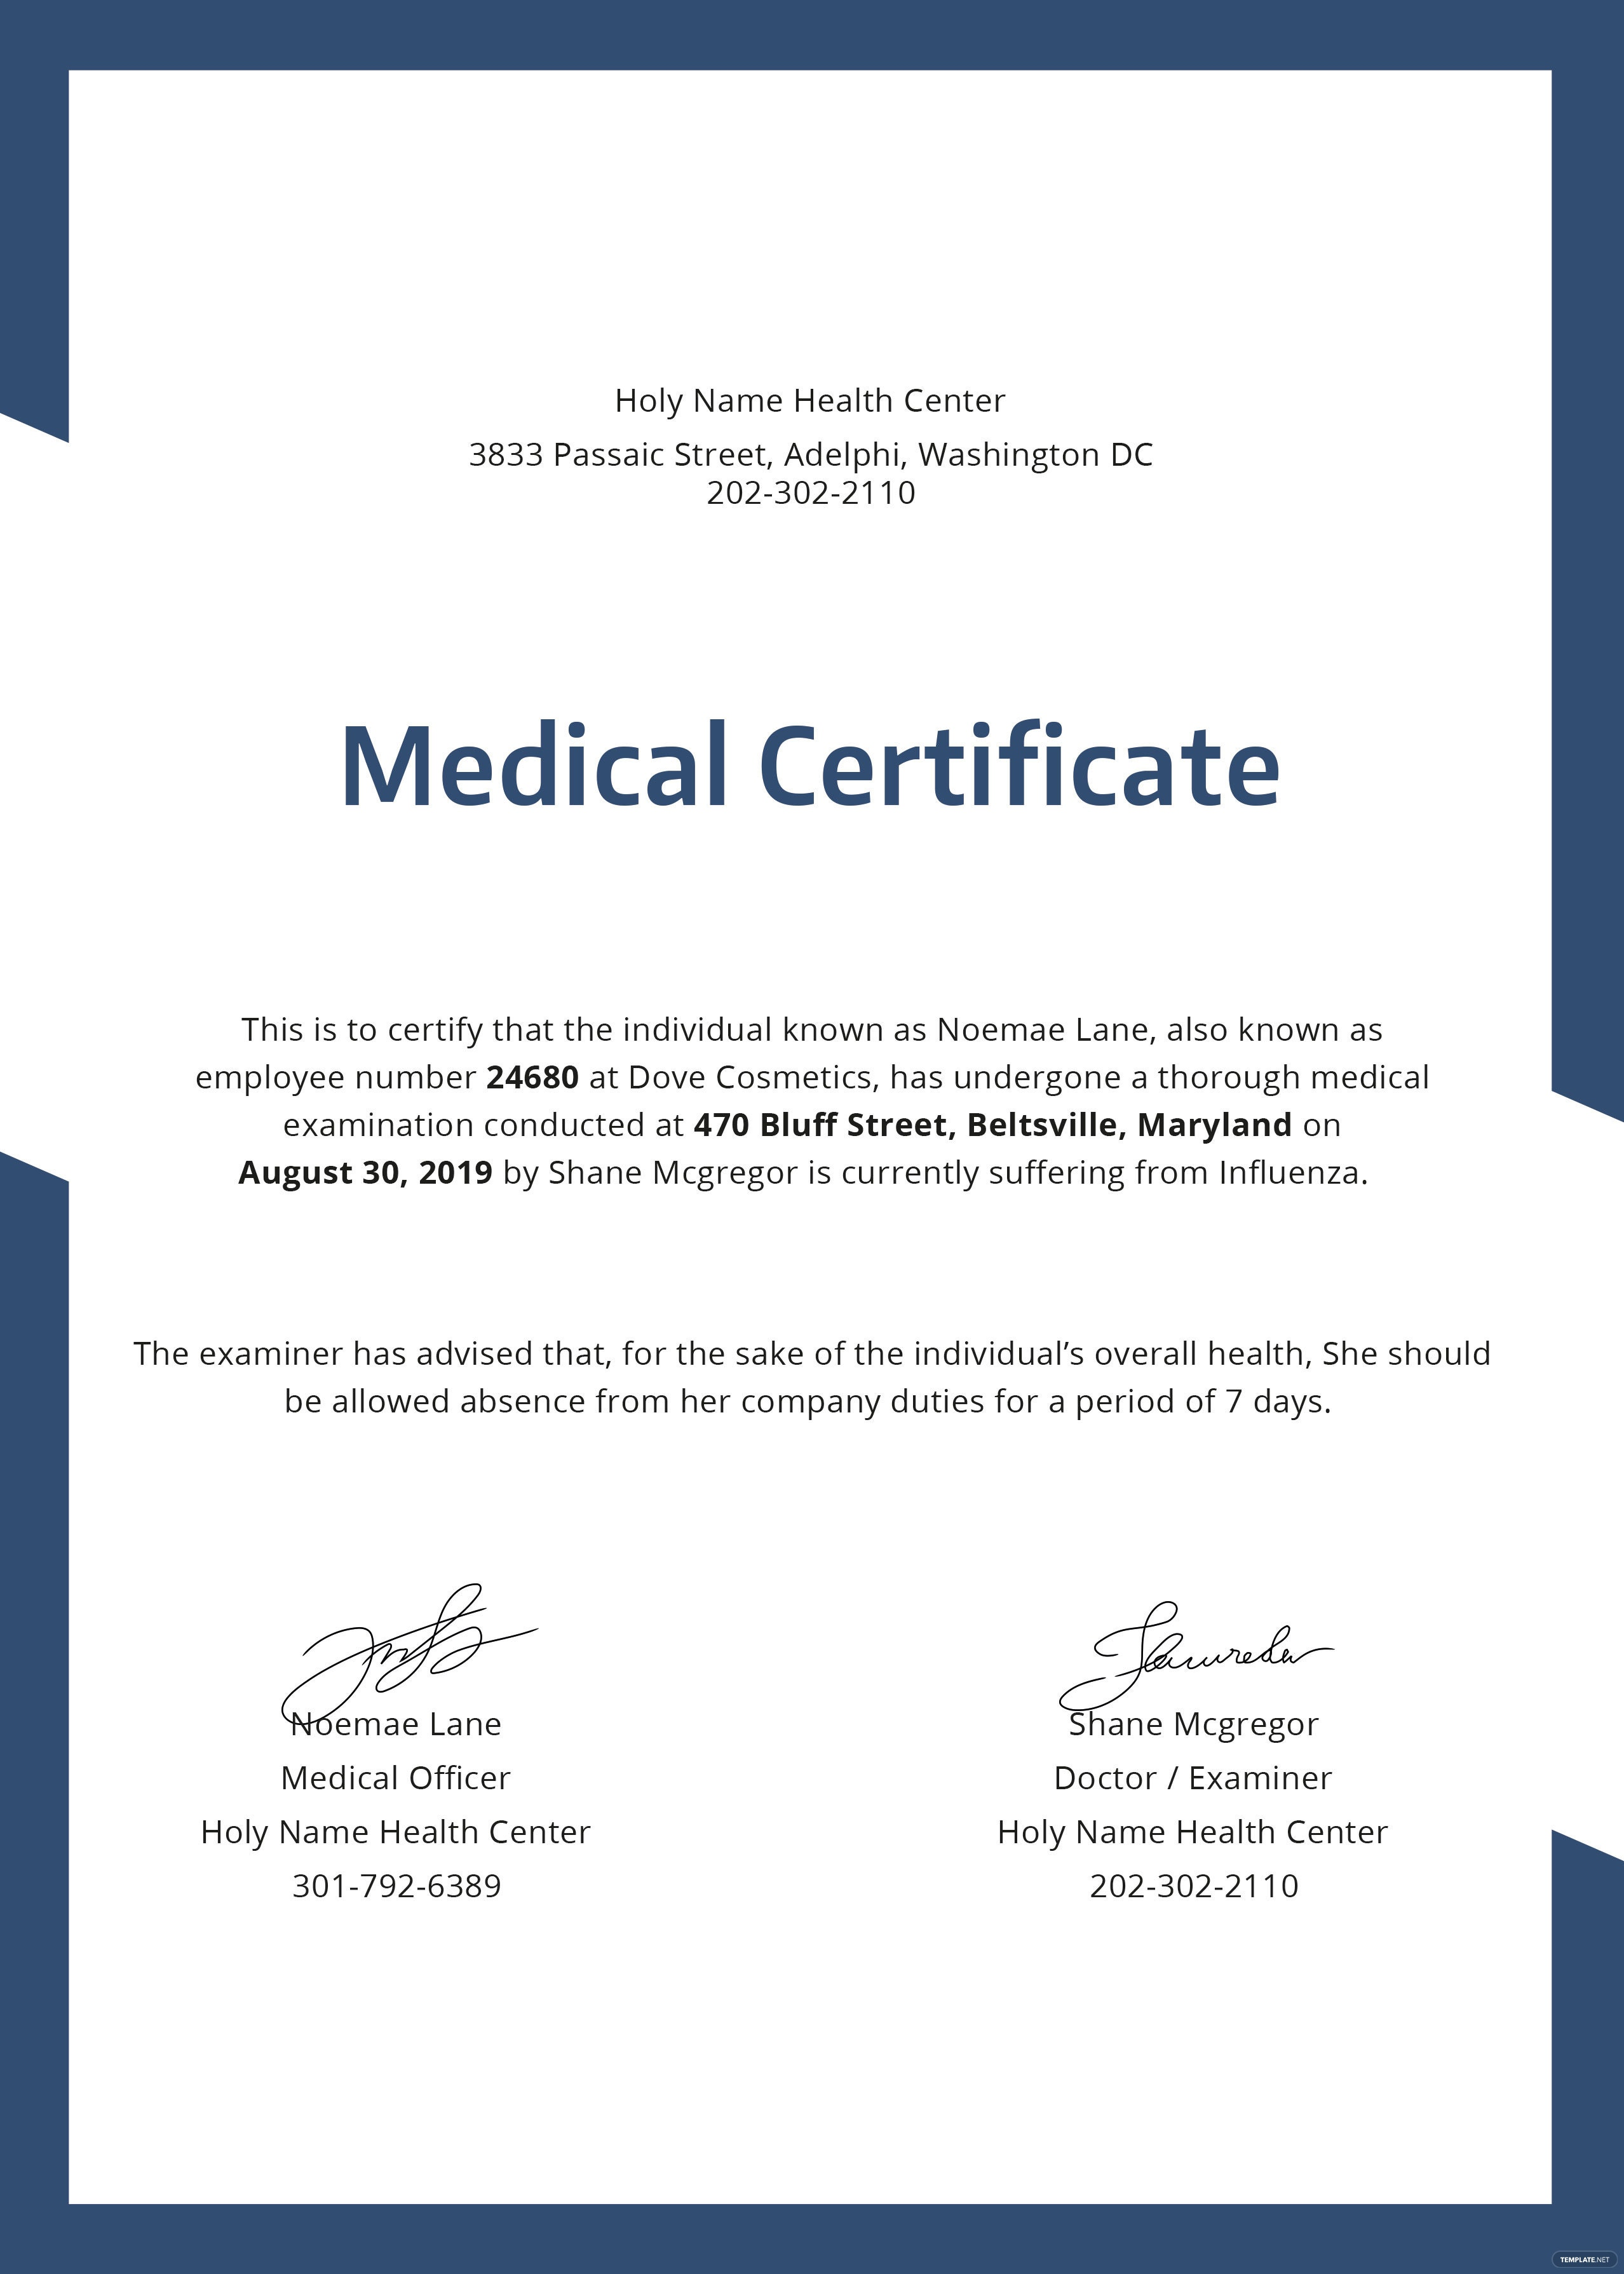 Free medical certificate template in psd ms word for Certification document template